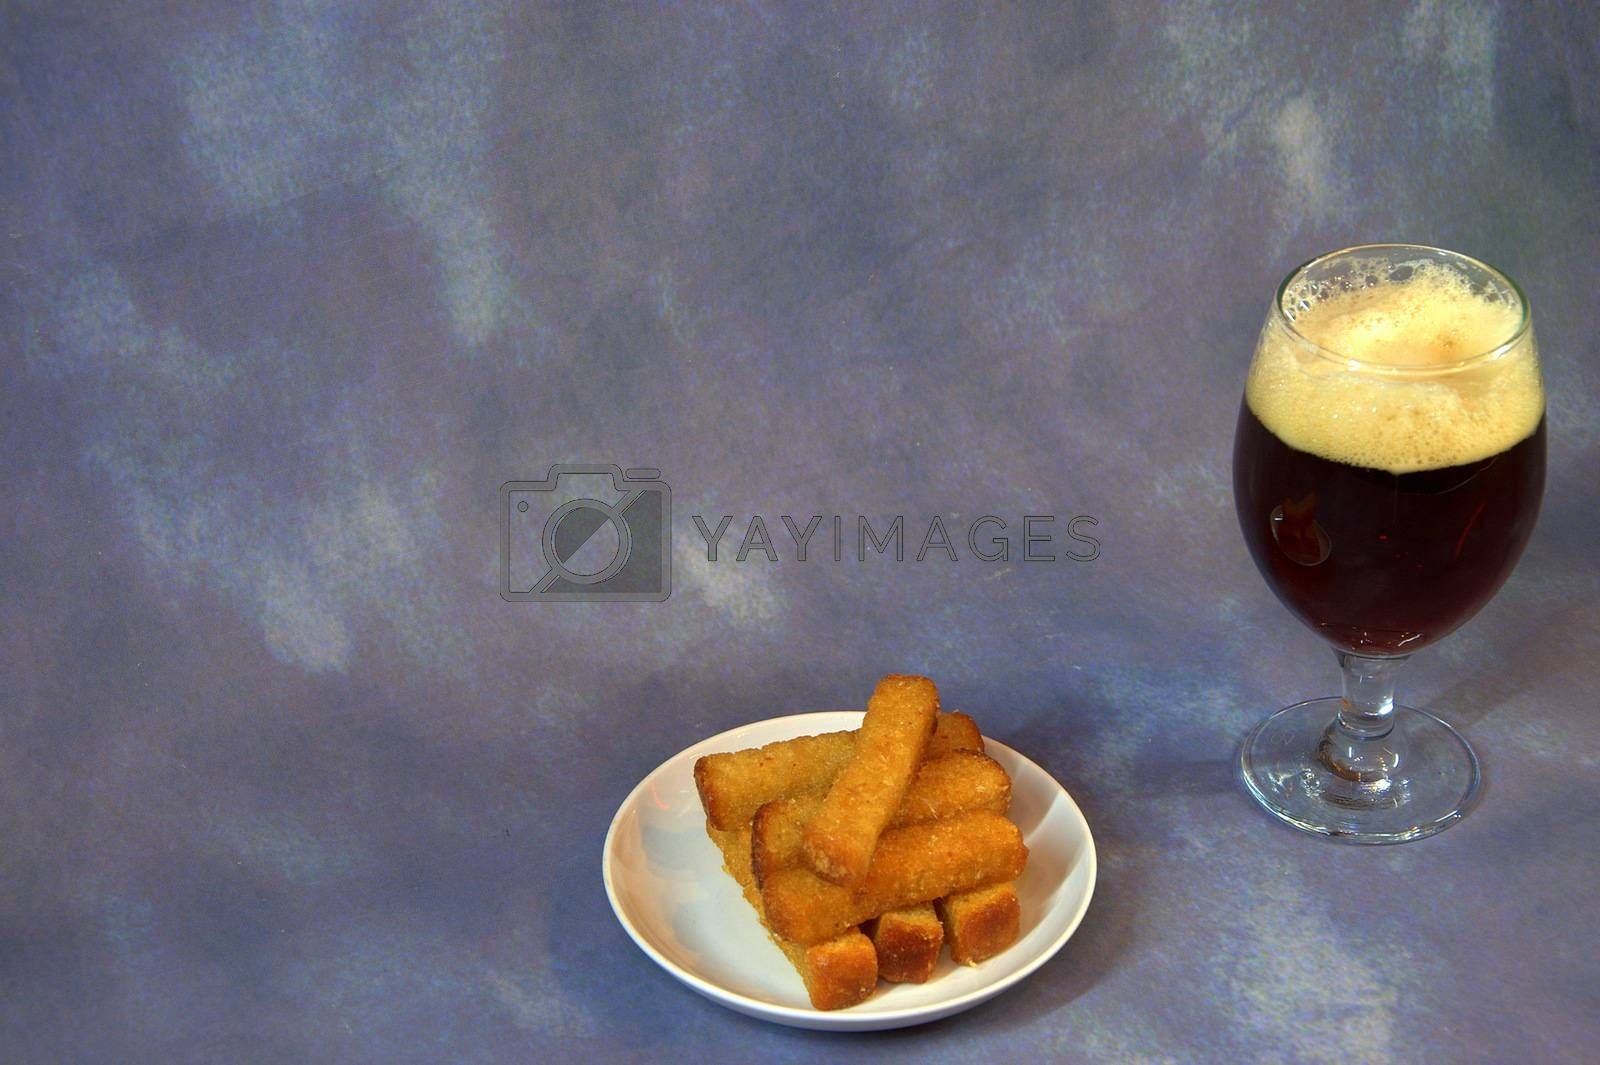 A glass of dark beer with foam and wheat croutons on a plate. Close-up.